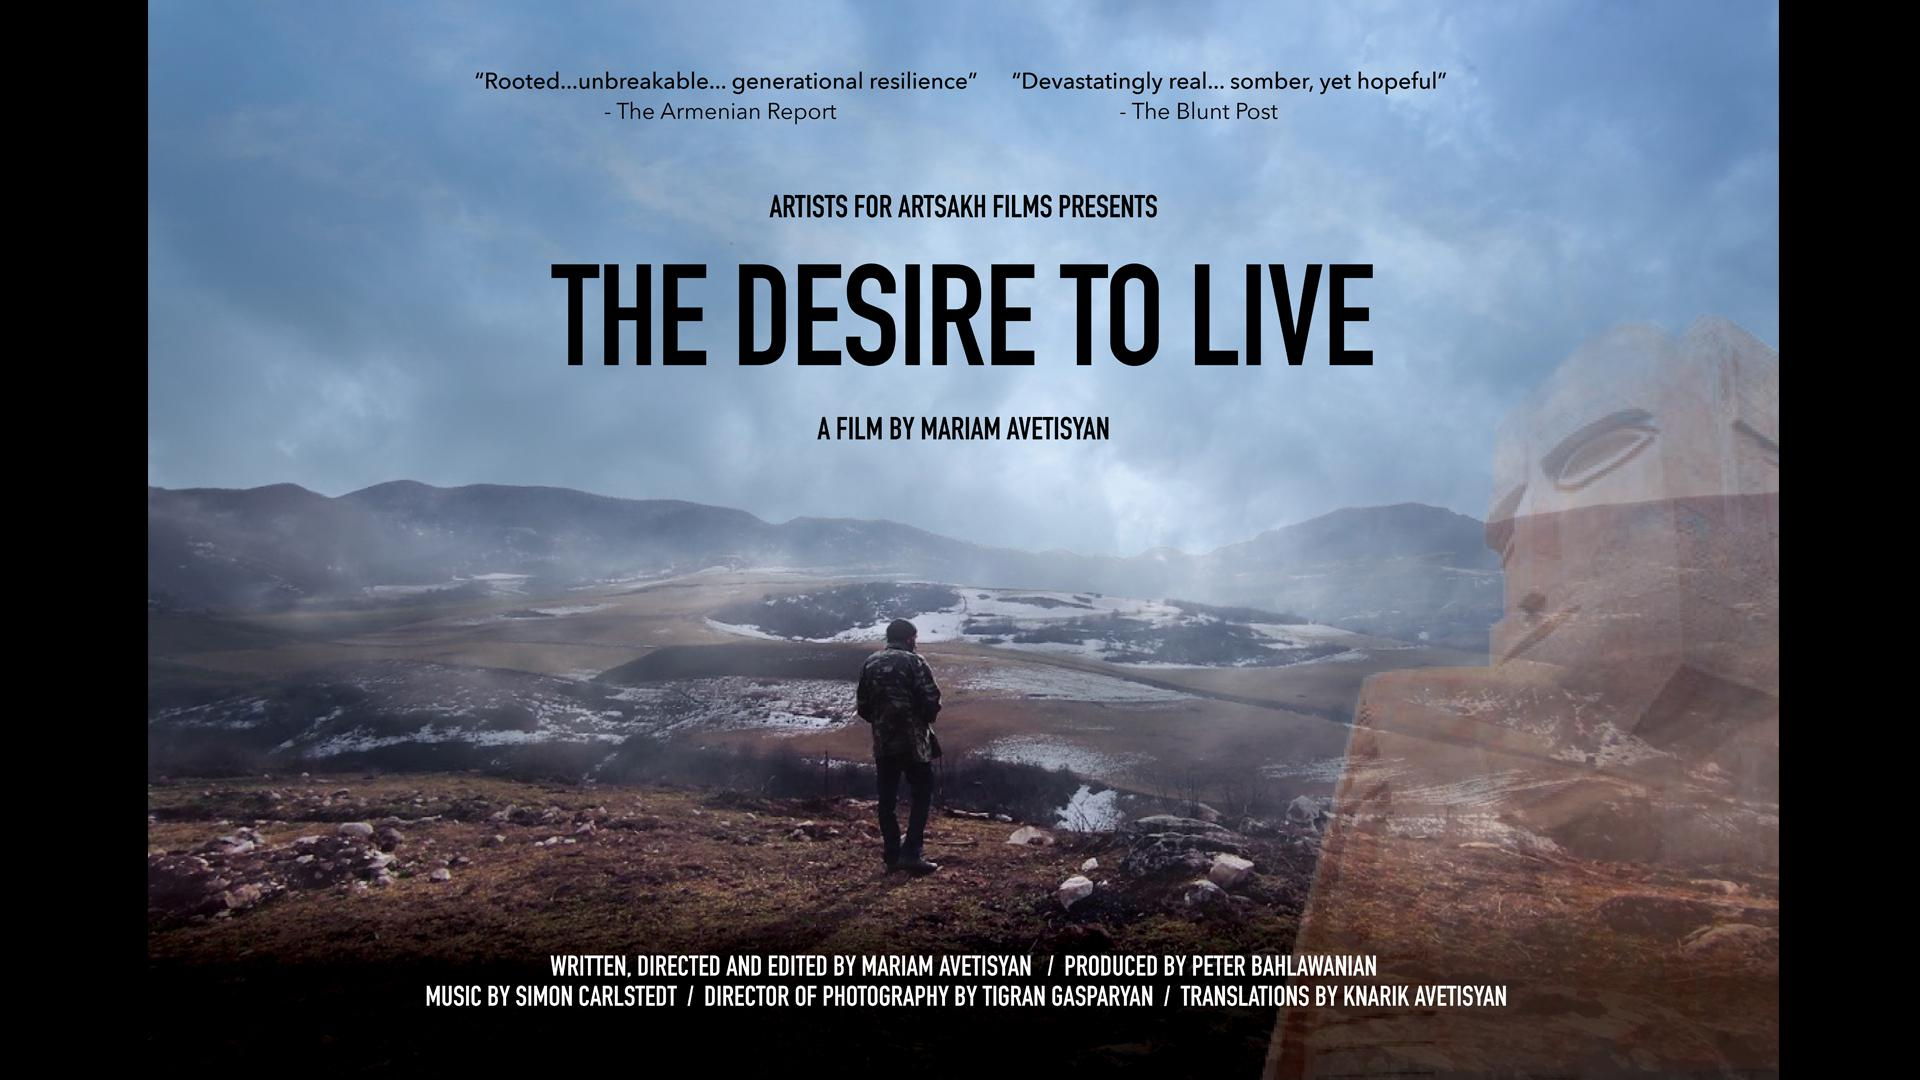 The Desire to Live